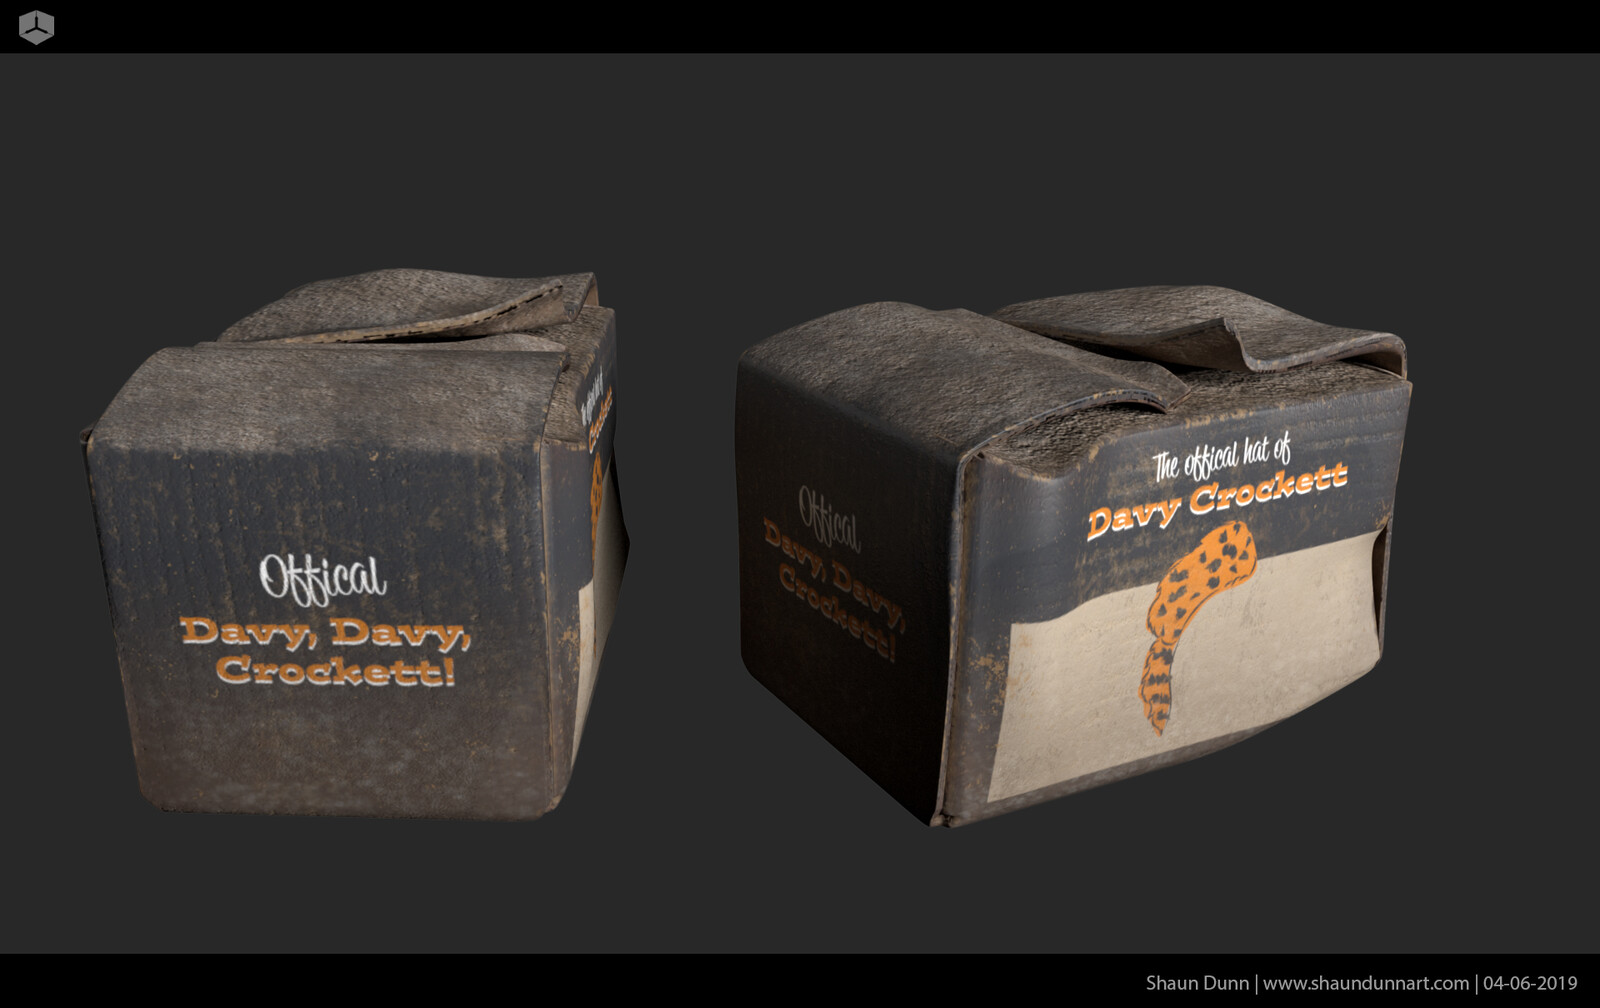 This 1950's inspired box that I designed was another Disney nod to the adventurous Davy Crockett.